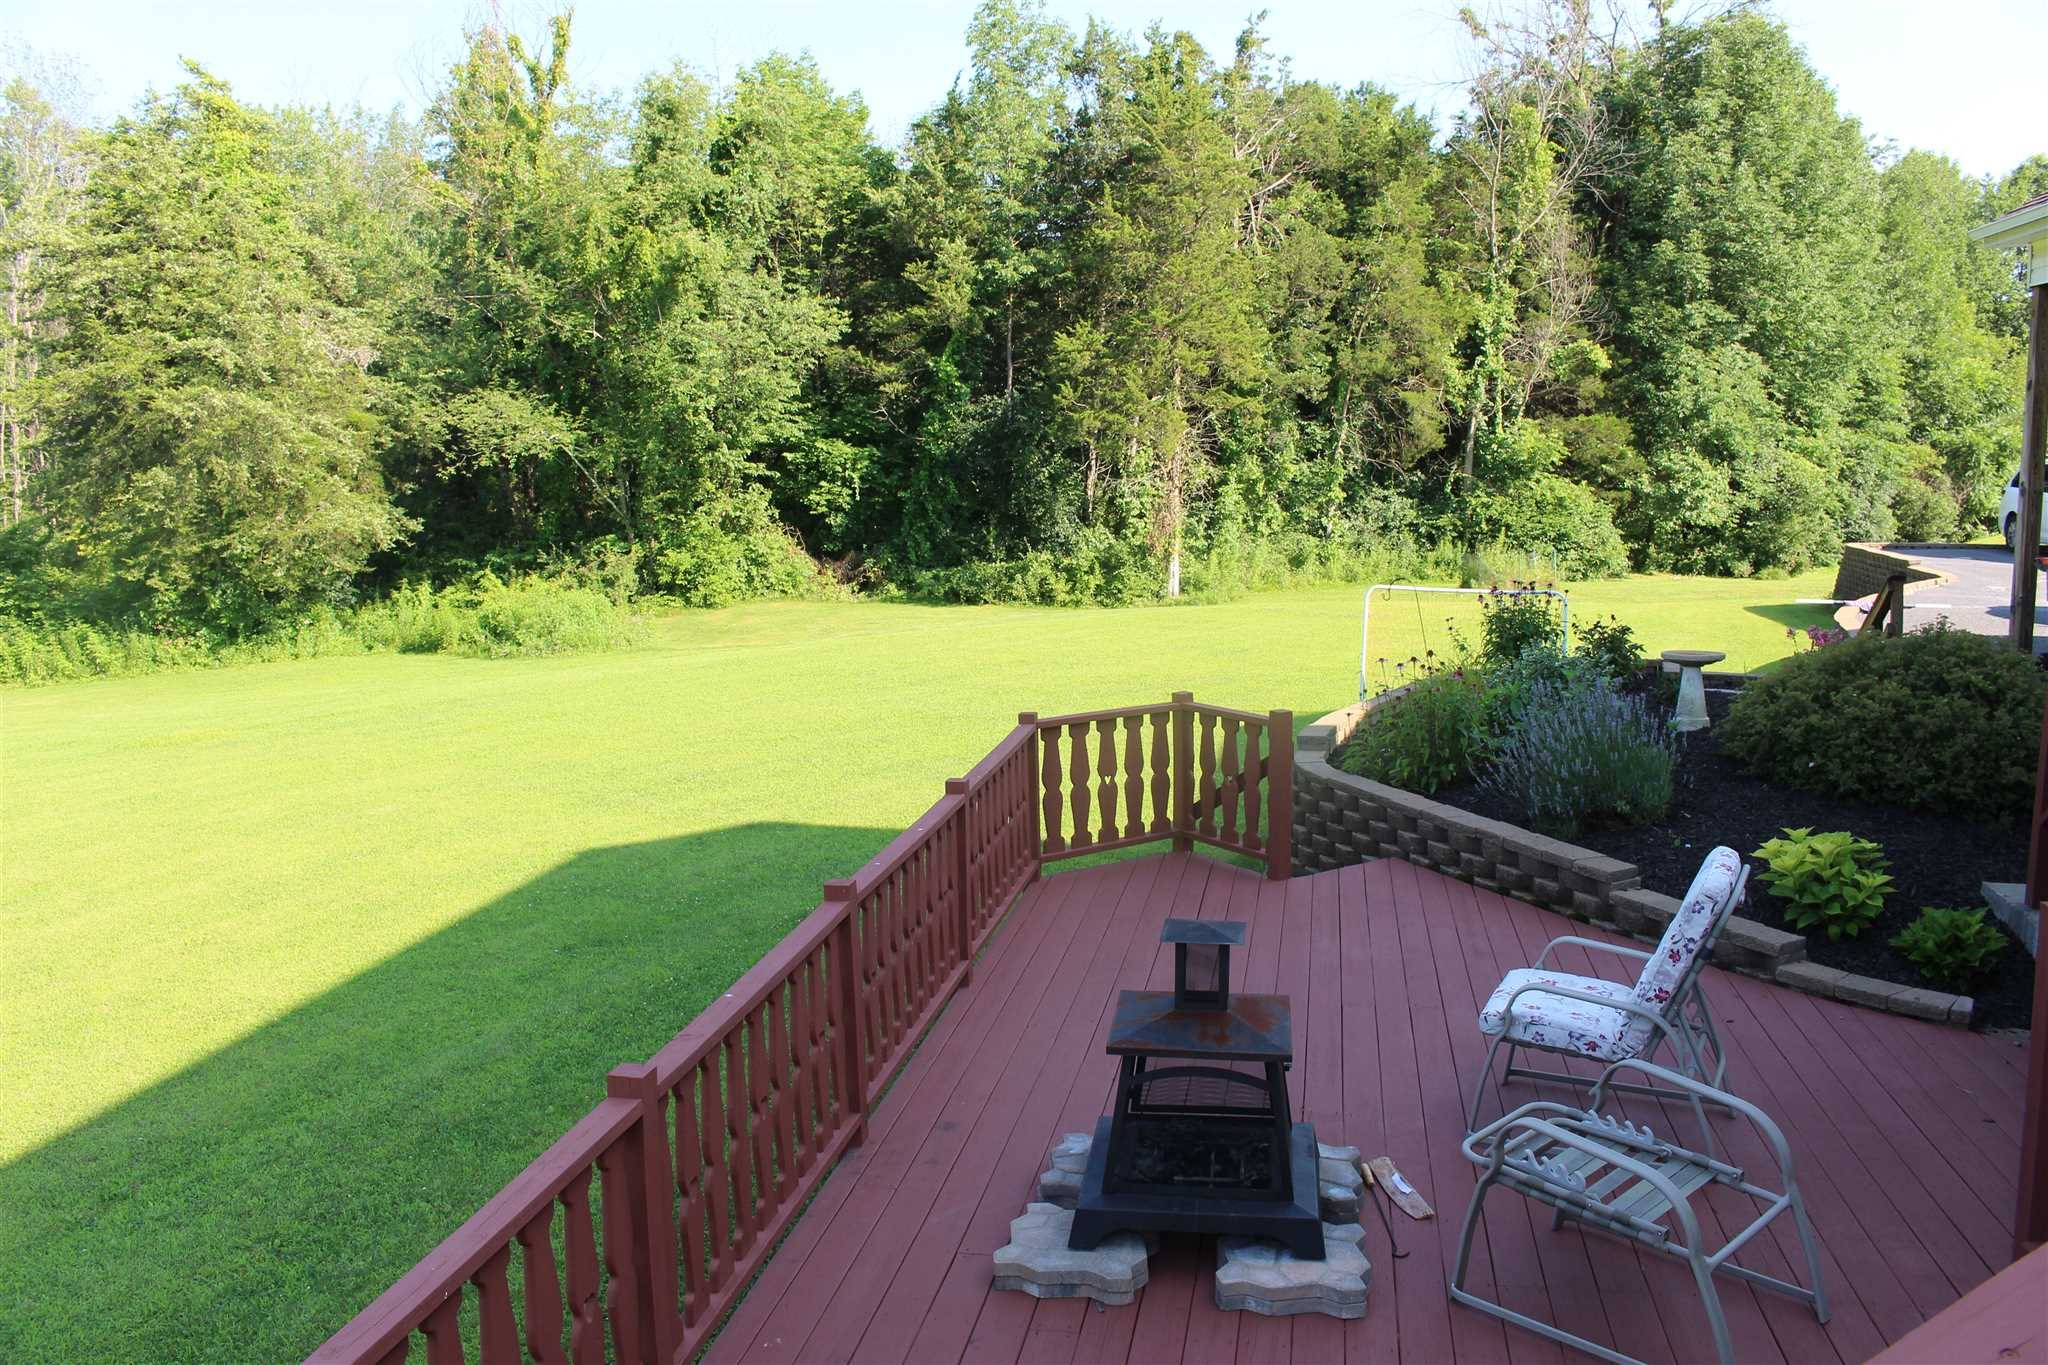 15 SHARON DR Clermont, NY 12583 - MLS #: 363913